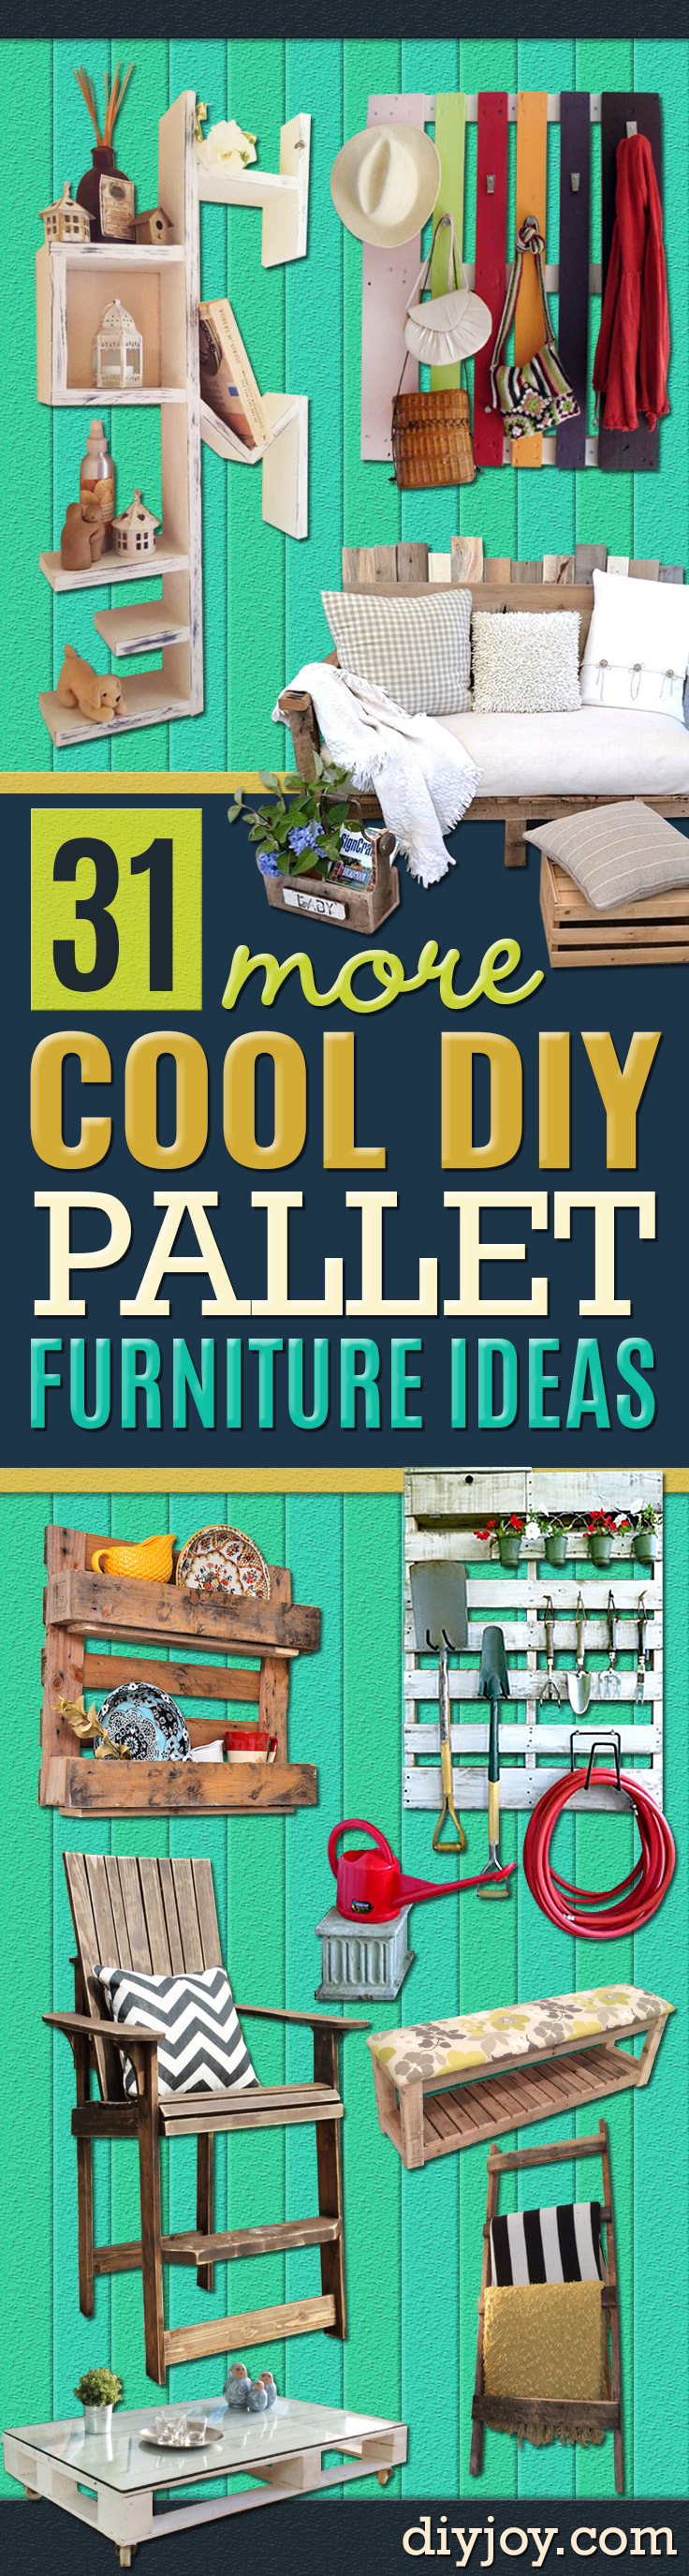 Best DIY Pallet Furniture Ideas - Cool Pallet Tables, Sofas, End Tables, Coffee Table, Bookcases, Wine Rack, Beds and Shelves - Rustic Wooden Pallet Furniture Made Easy With Step by Step Tutorials - Quick DIY Projects and Crafts by DIY Joy http://diyjoy.com/best-diy-pallet-furniture-ideas